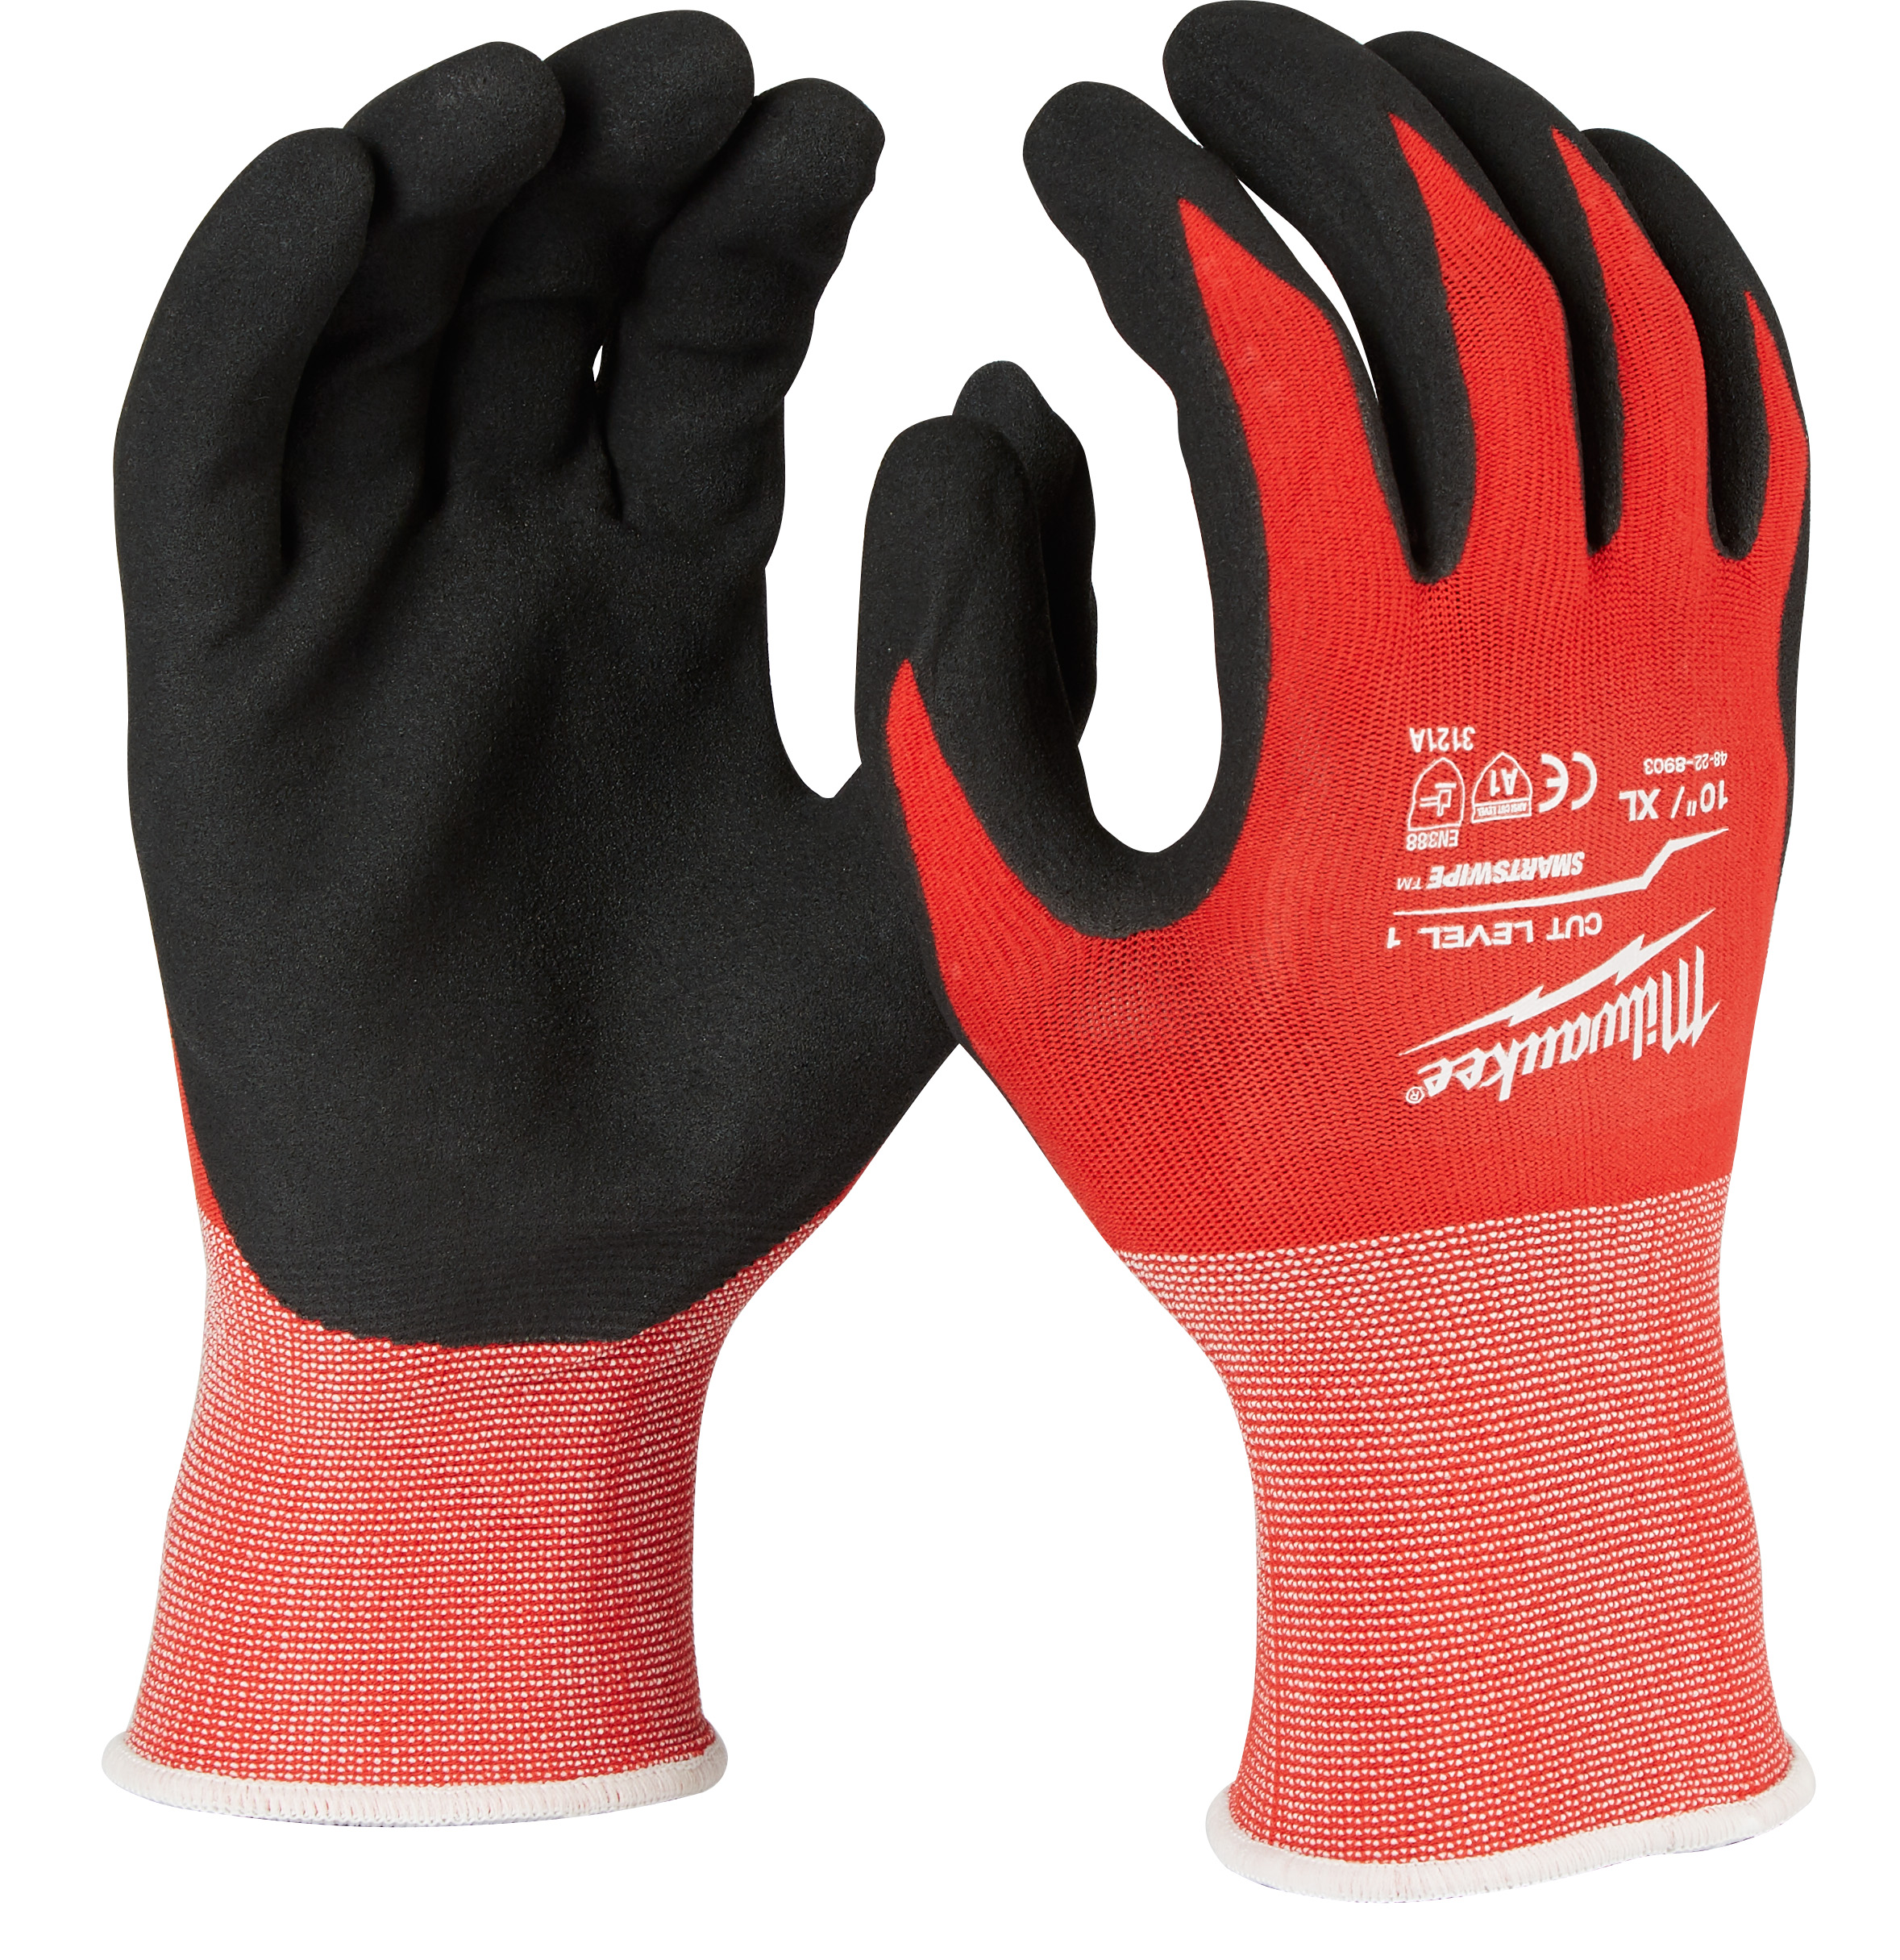 MILWAUKEE 48-22-8903 (6) CUT 1 NITRILE GLOVES - XL